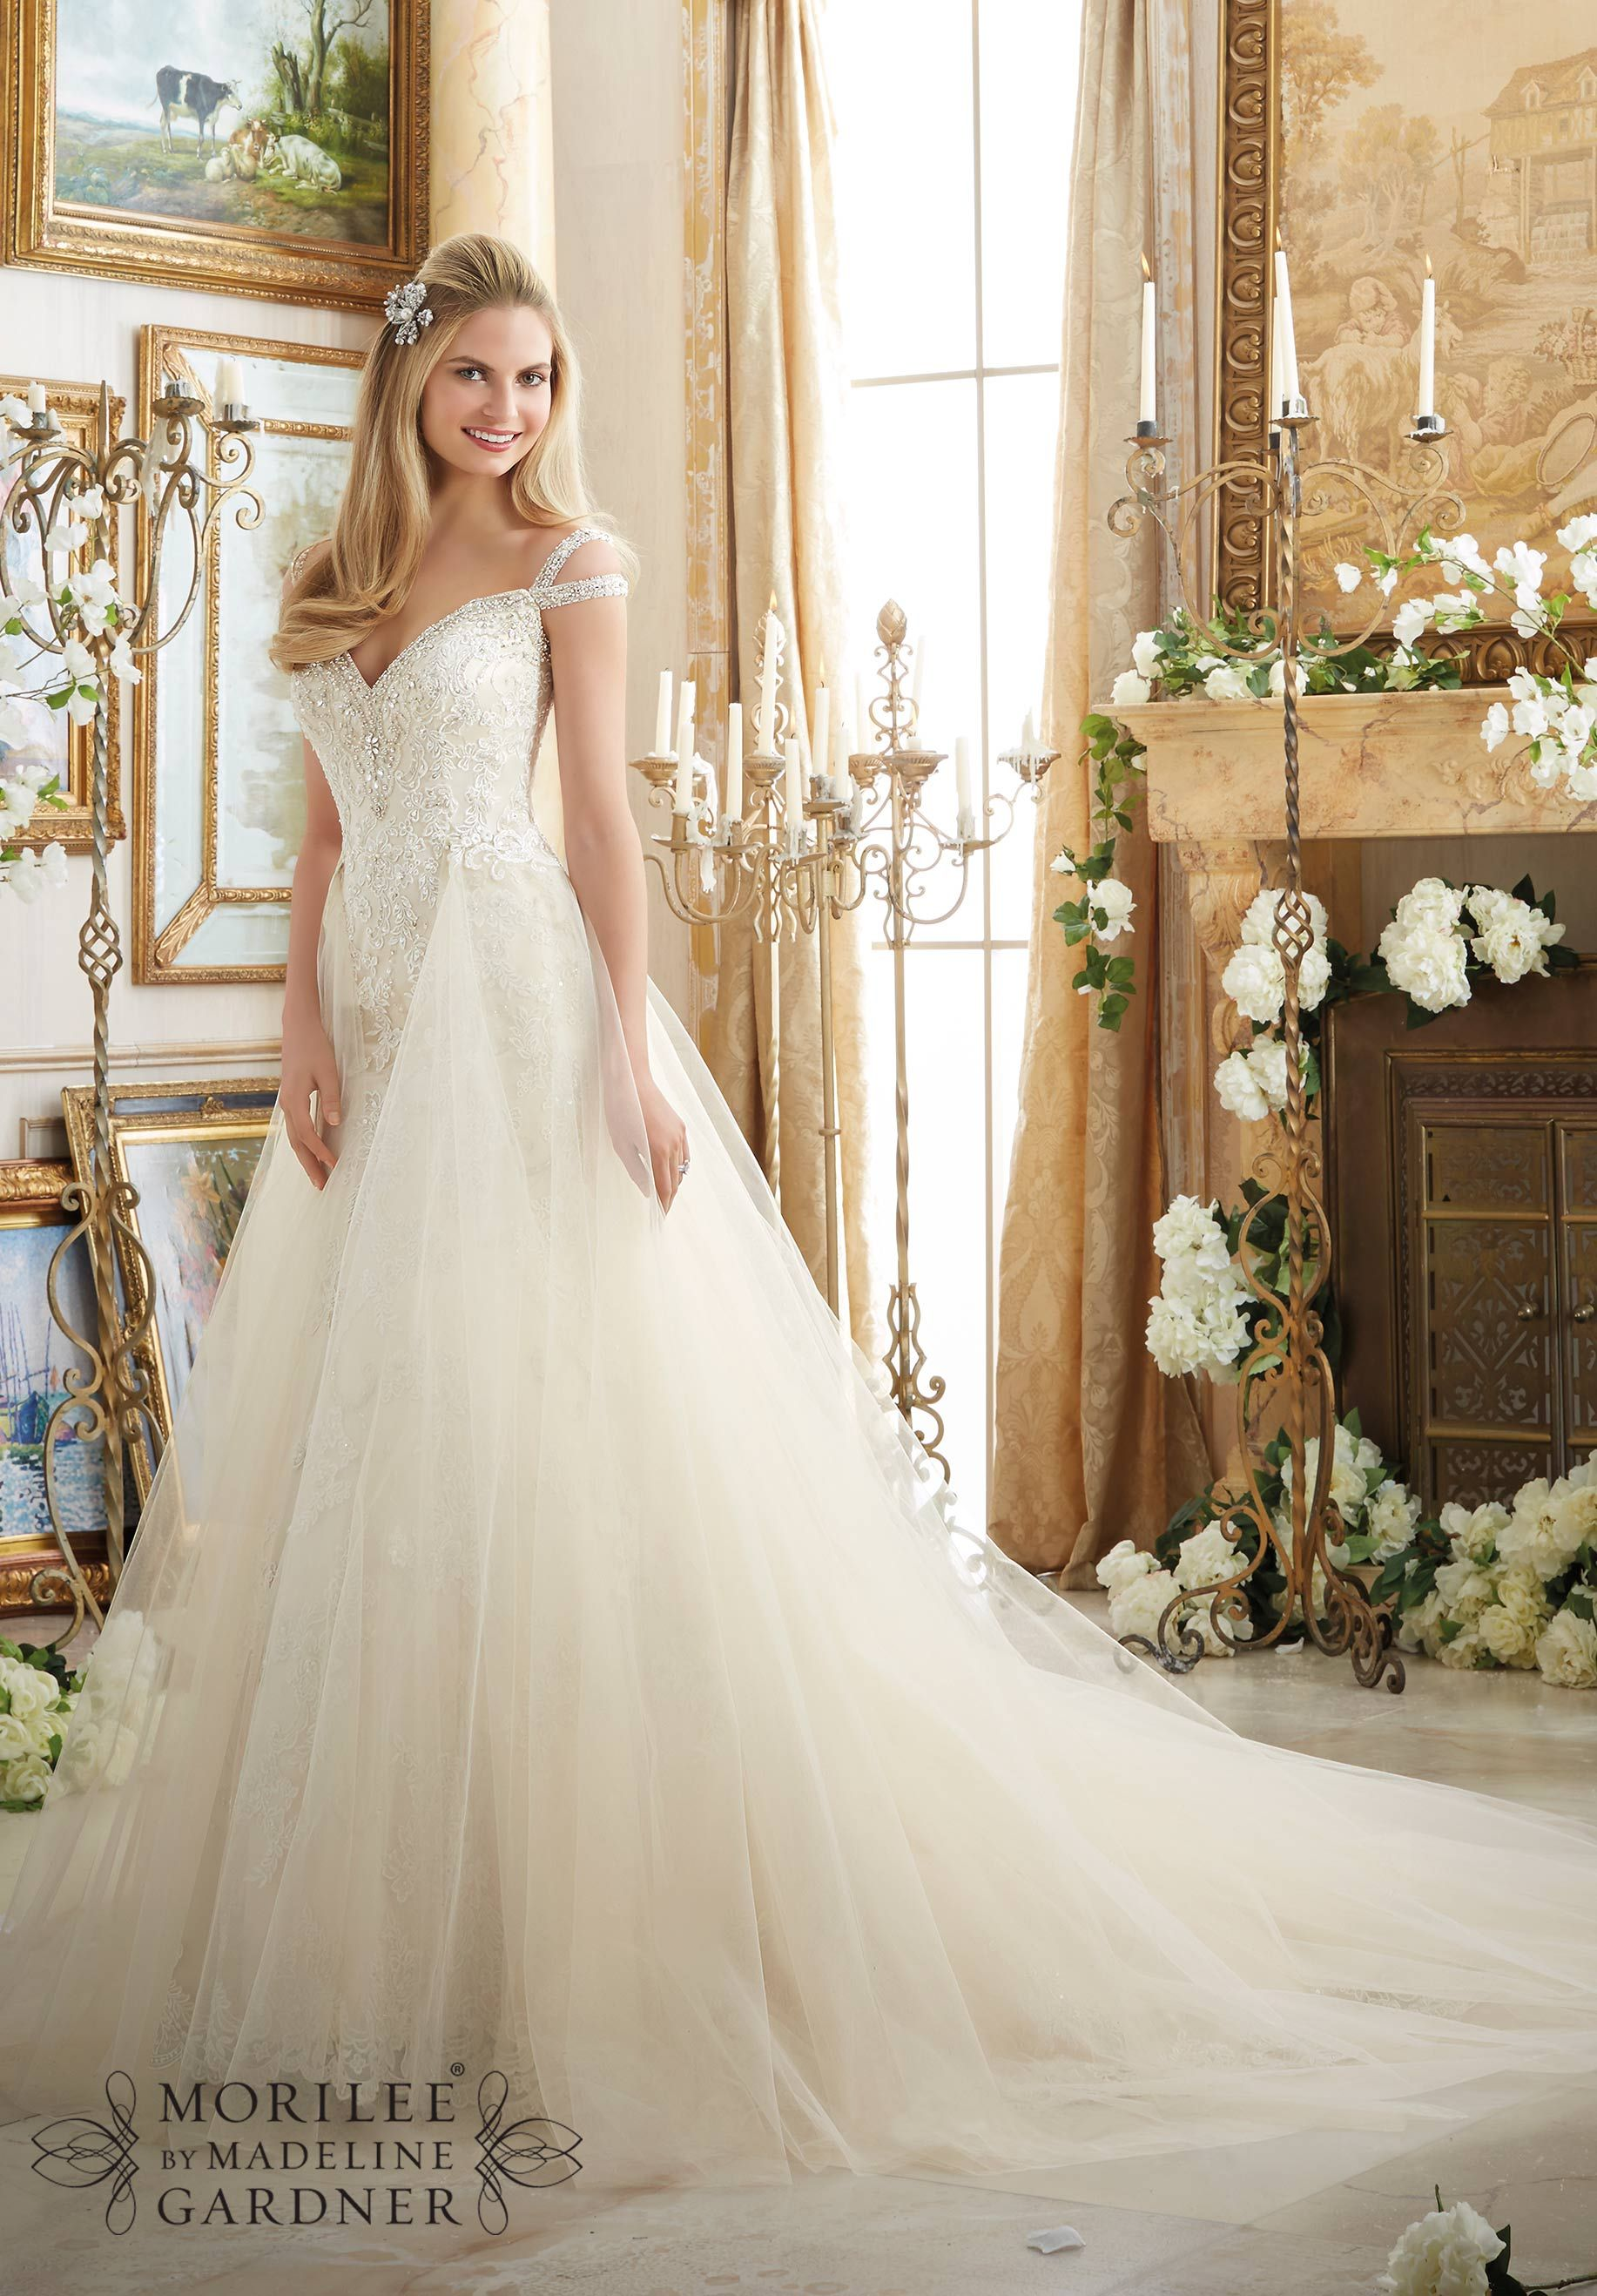 Morilee Not Expensive Lots Of Stockists 2894 Bridal Gowns Dresses Embroidered Liques On